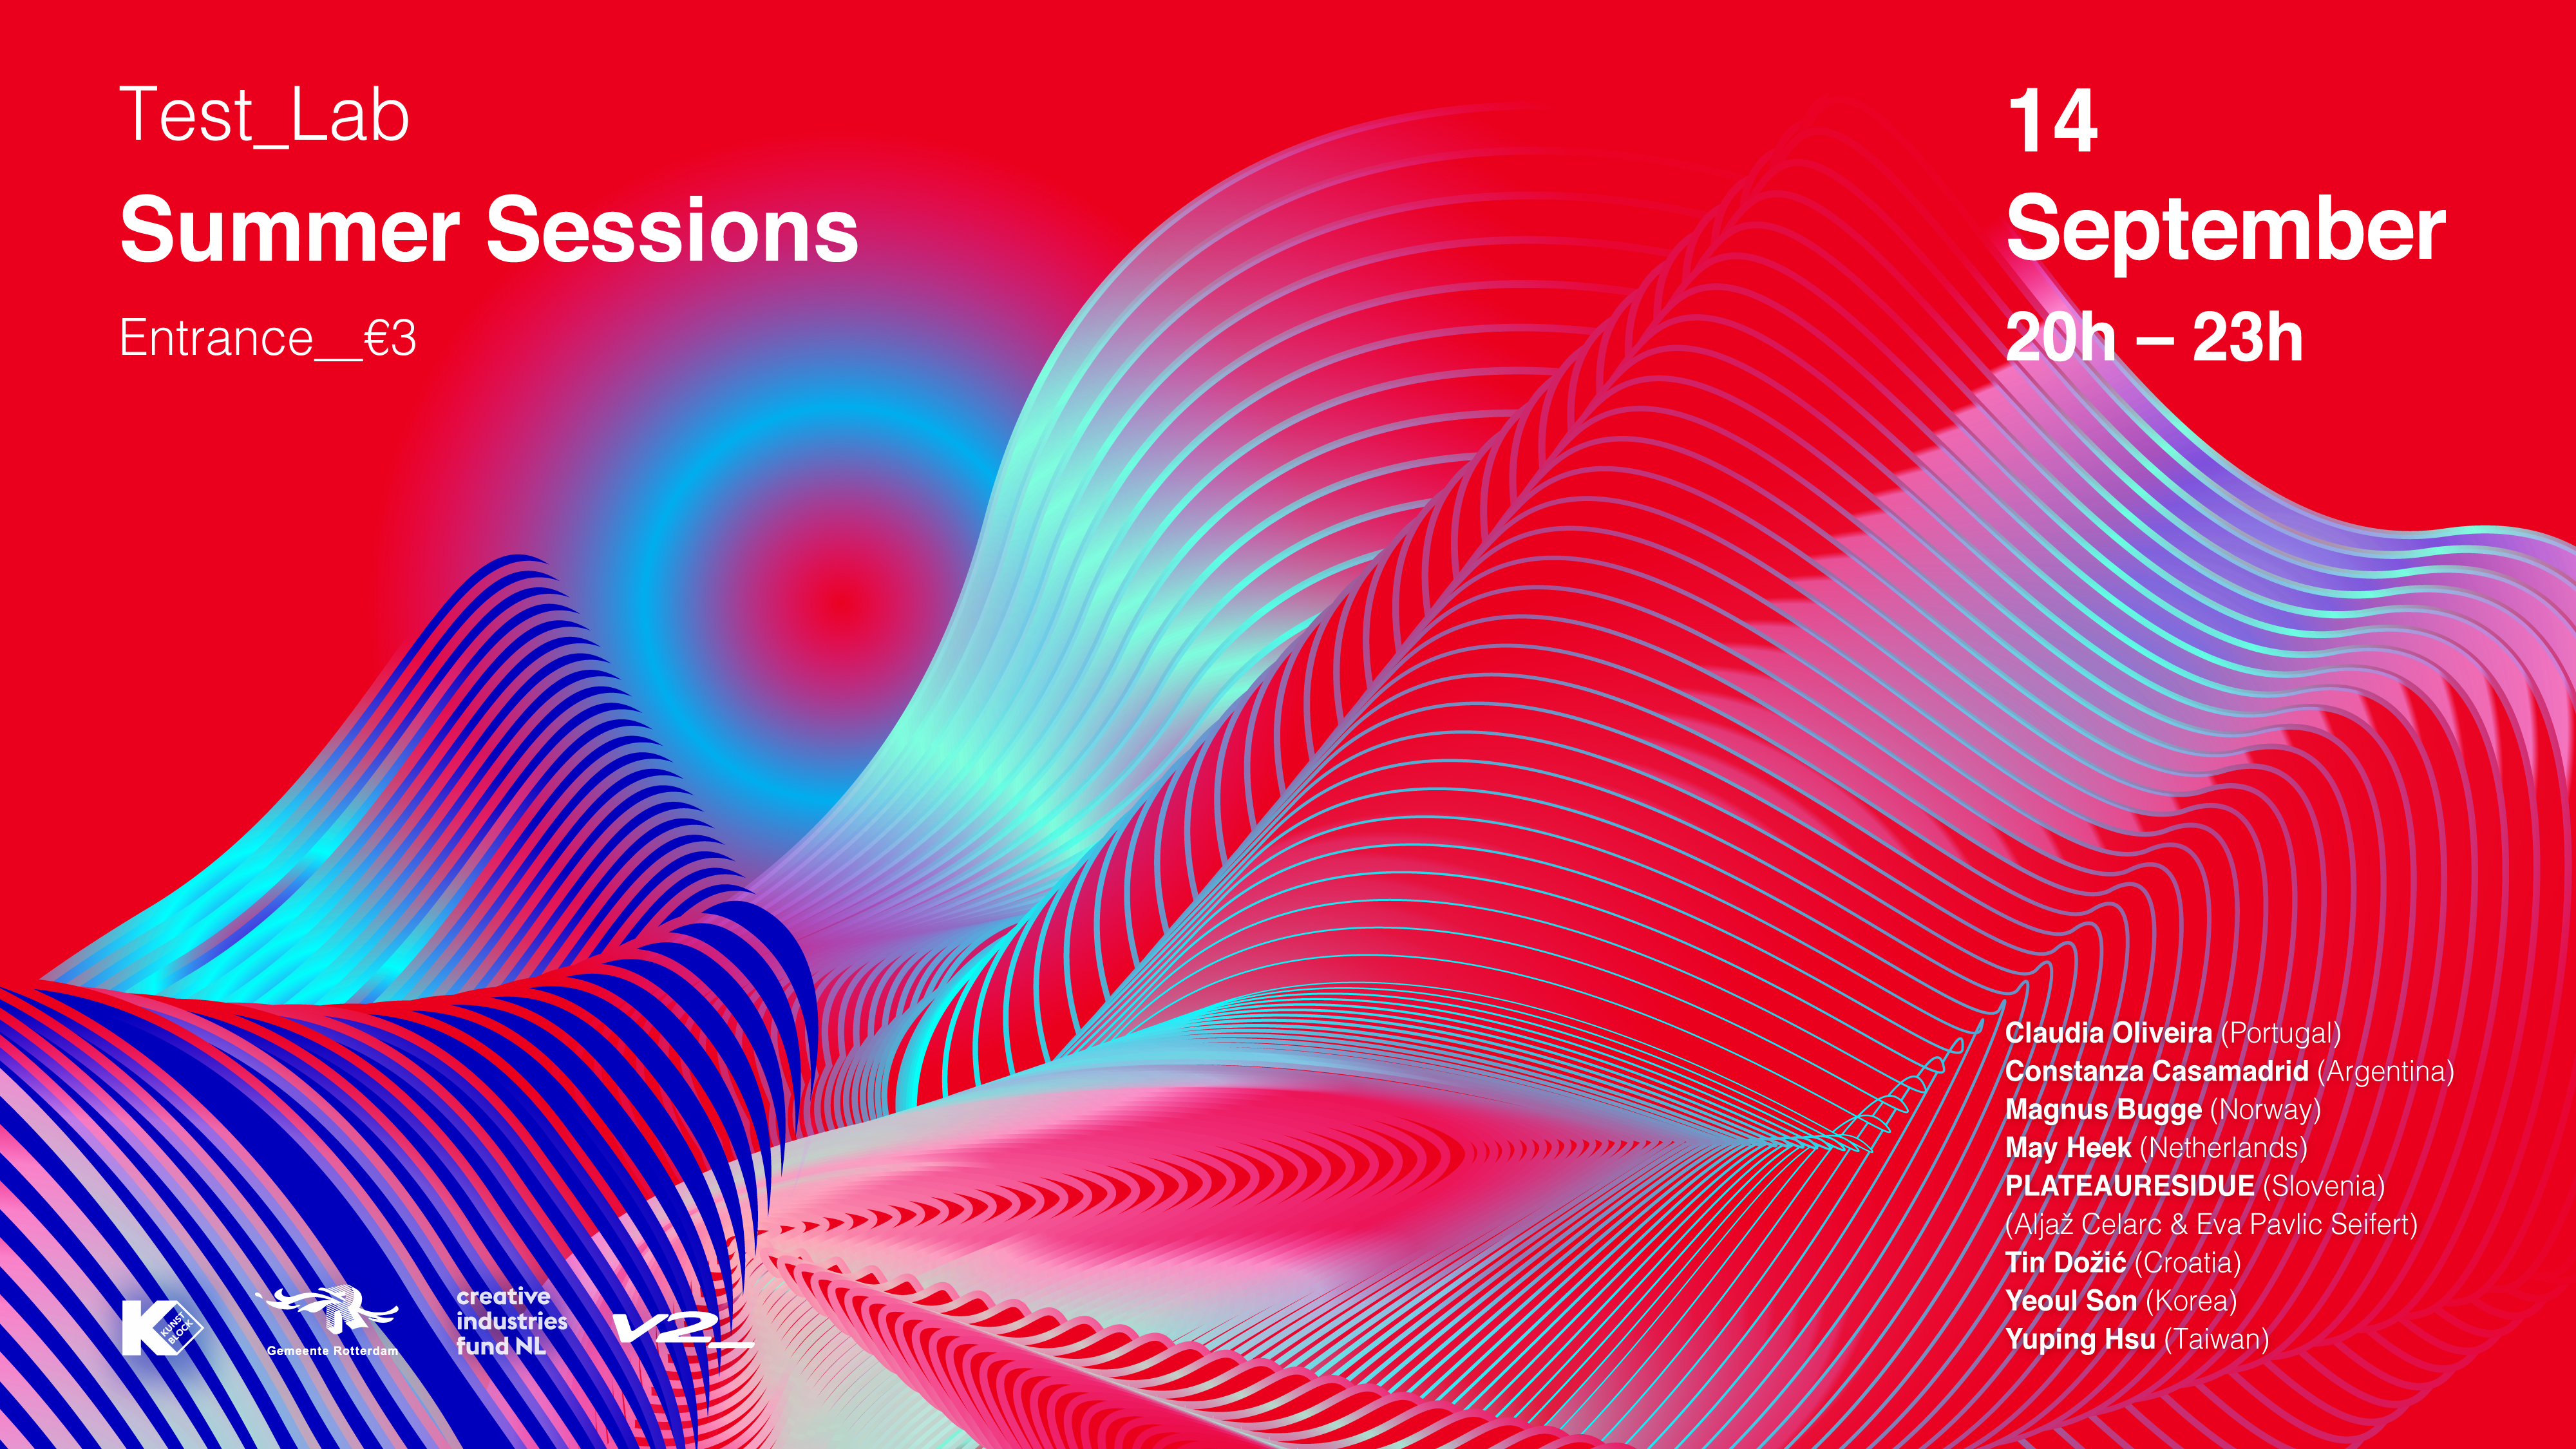 Test_Lab: Summer Sessions 2017